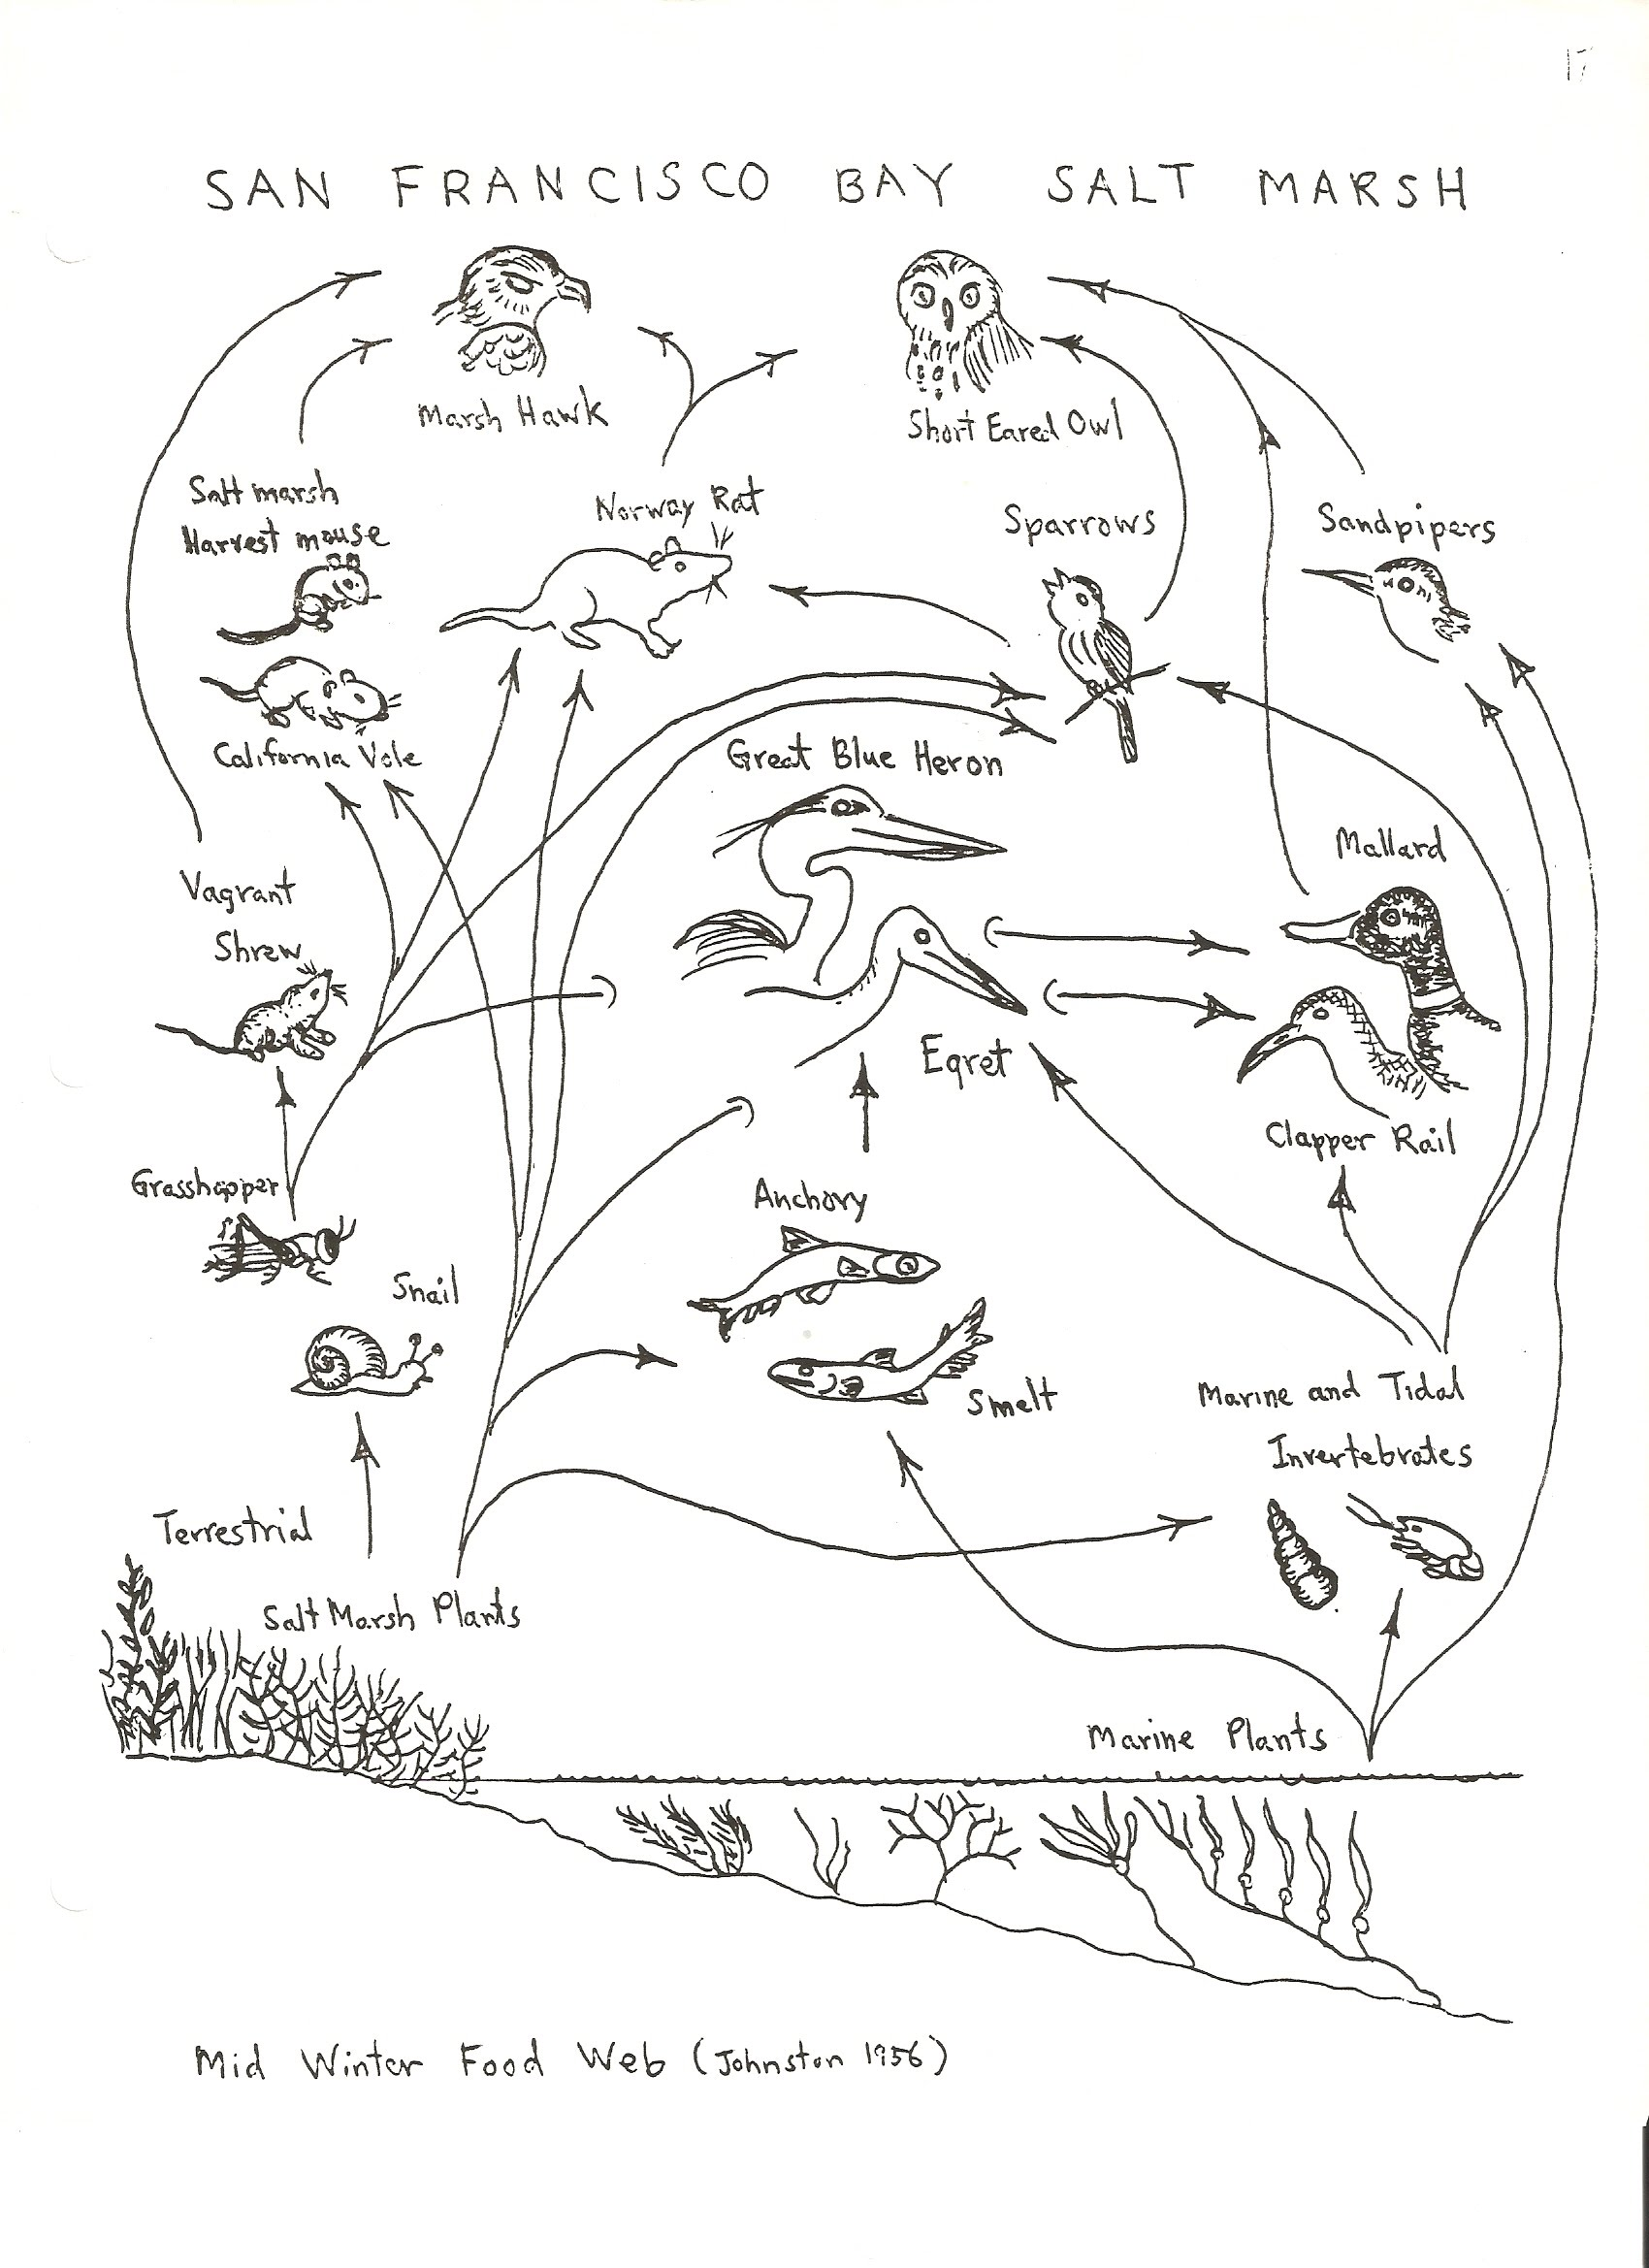 Worksheets Food Web Worksheets food chain and web worksheet free worksheets library download w ksheet high school ksheets libr ry downlo d